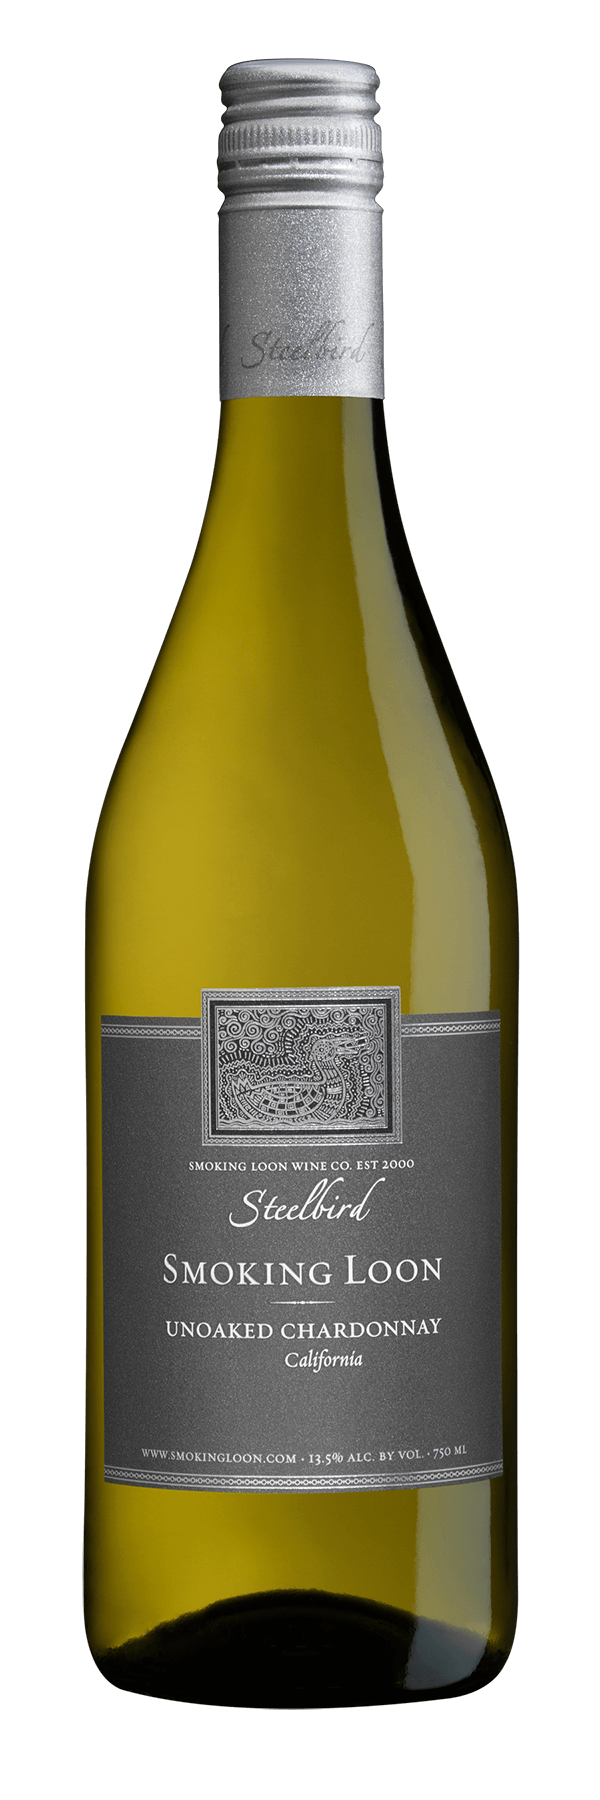 Smoking Loon Steelbird Chardonnay 2016